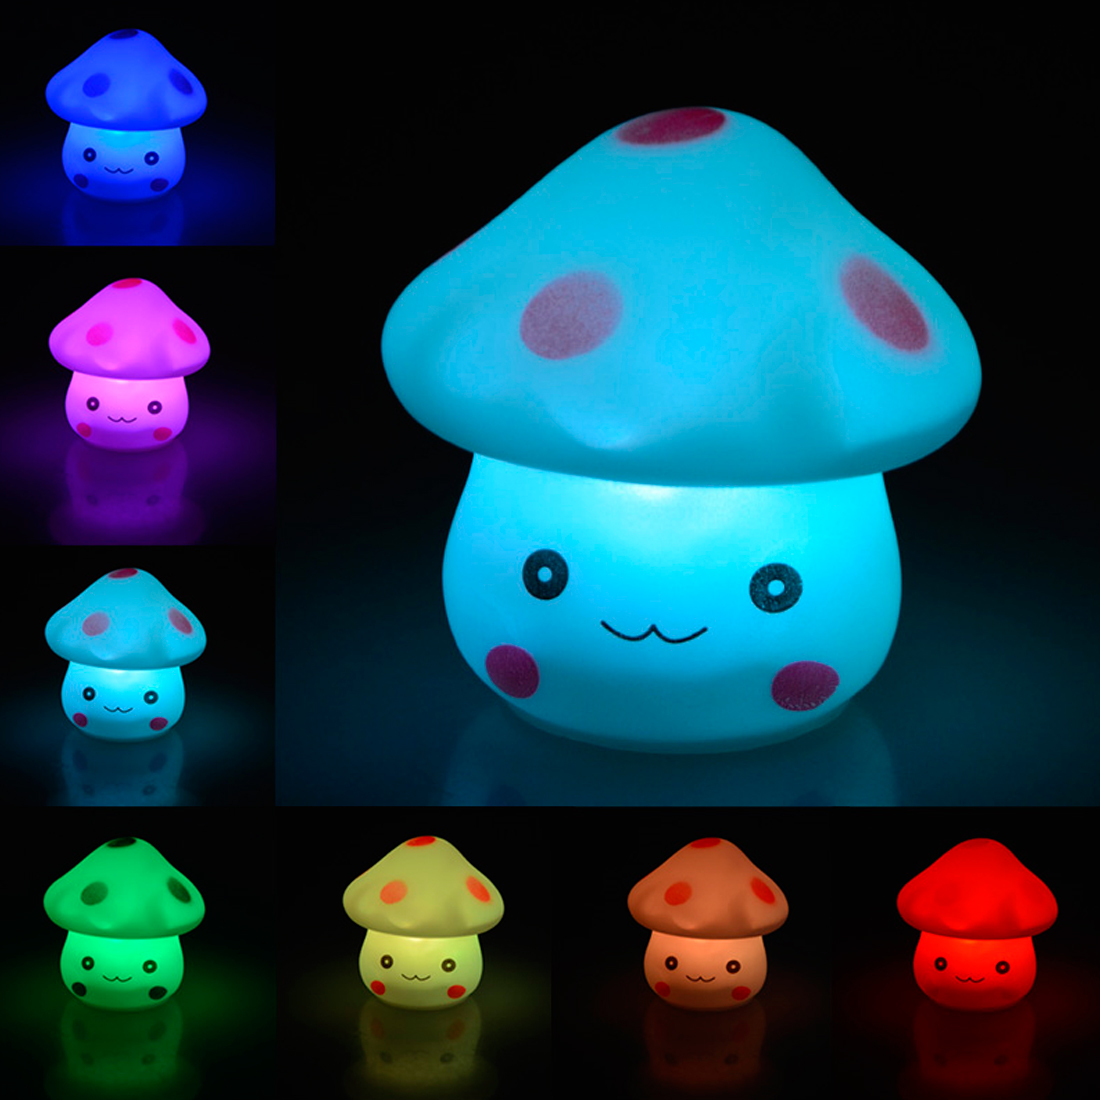 Colorful Mushroom LED Night Light Press Down Touch Room Desk Bedside Lamp For Baby Kids Christmas Gifts Interior Design